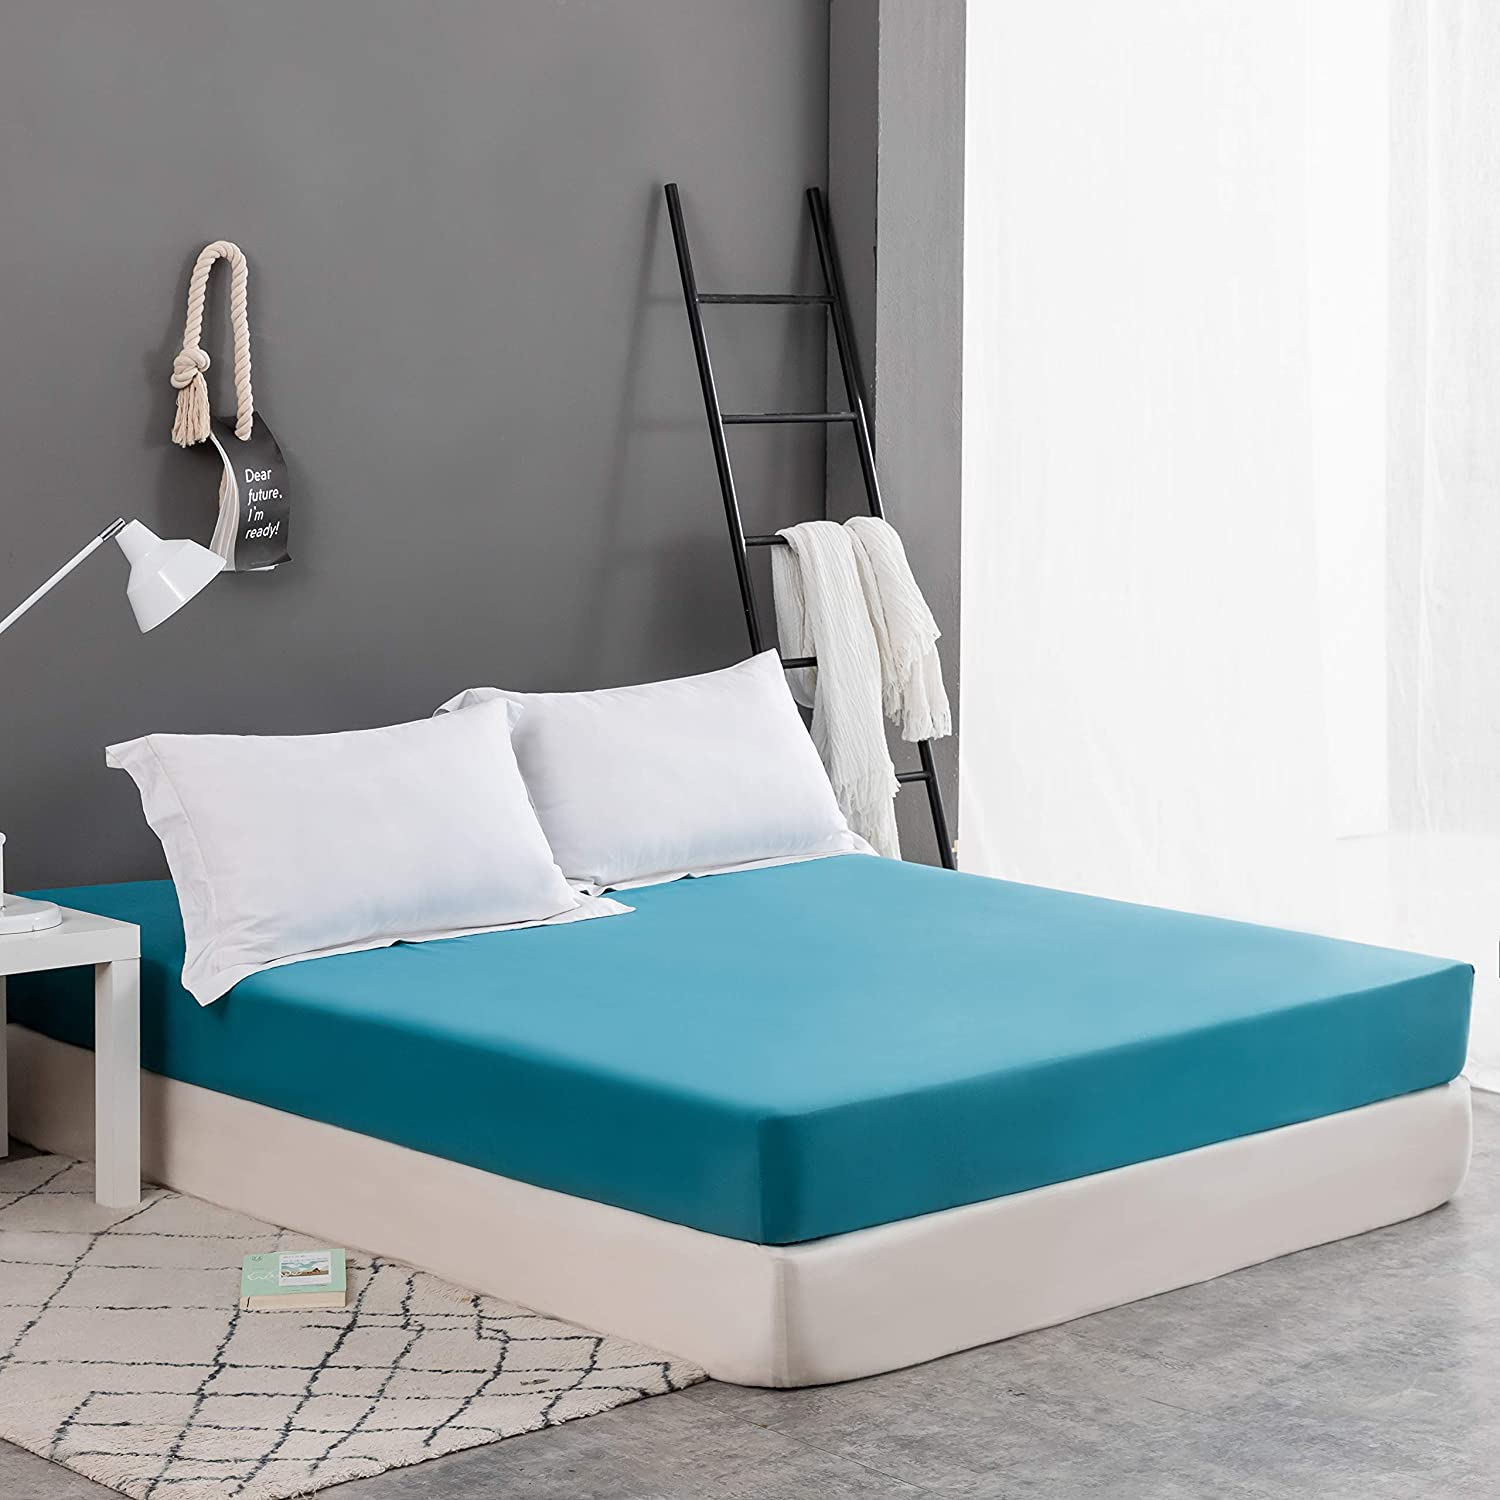 Breathable Tight Fit Brushed Microfiber 1800 Wrinkle and Fade Resistant Fits Mattress up to 16 Queen Mohap Fitted Sheet Queen Wide Rubber Band Deep Pocket White Durable